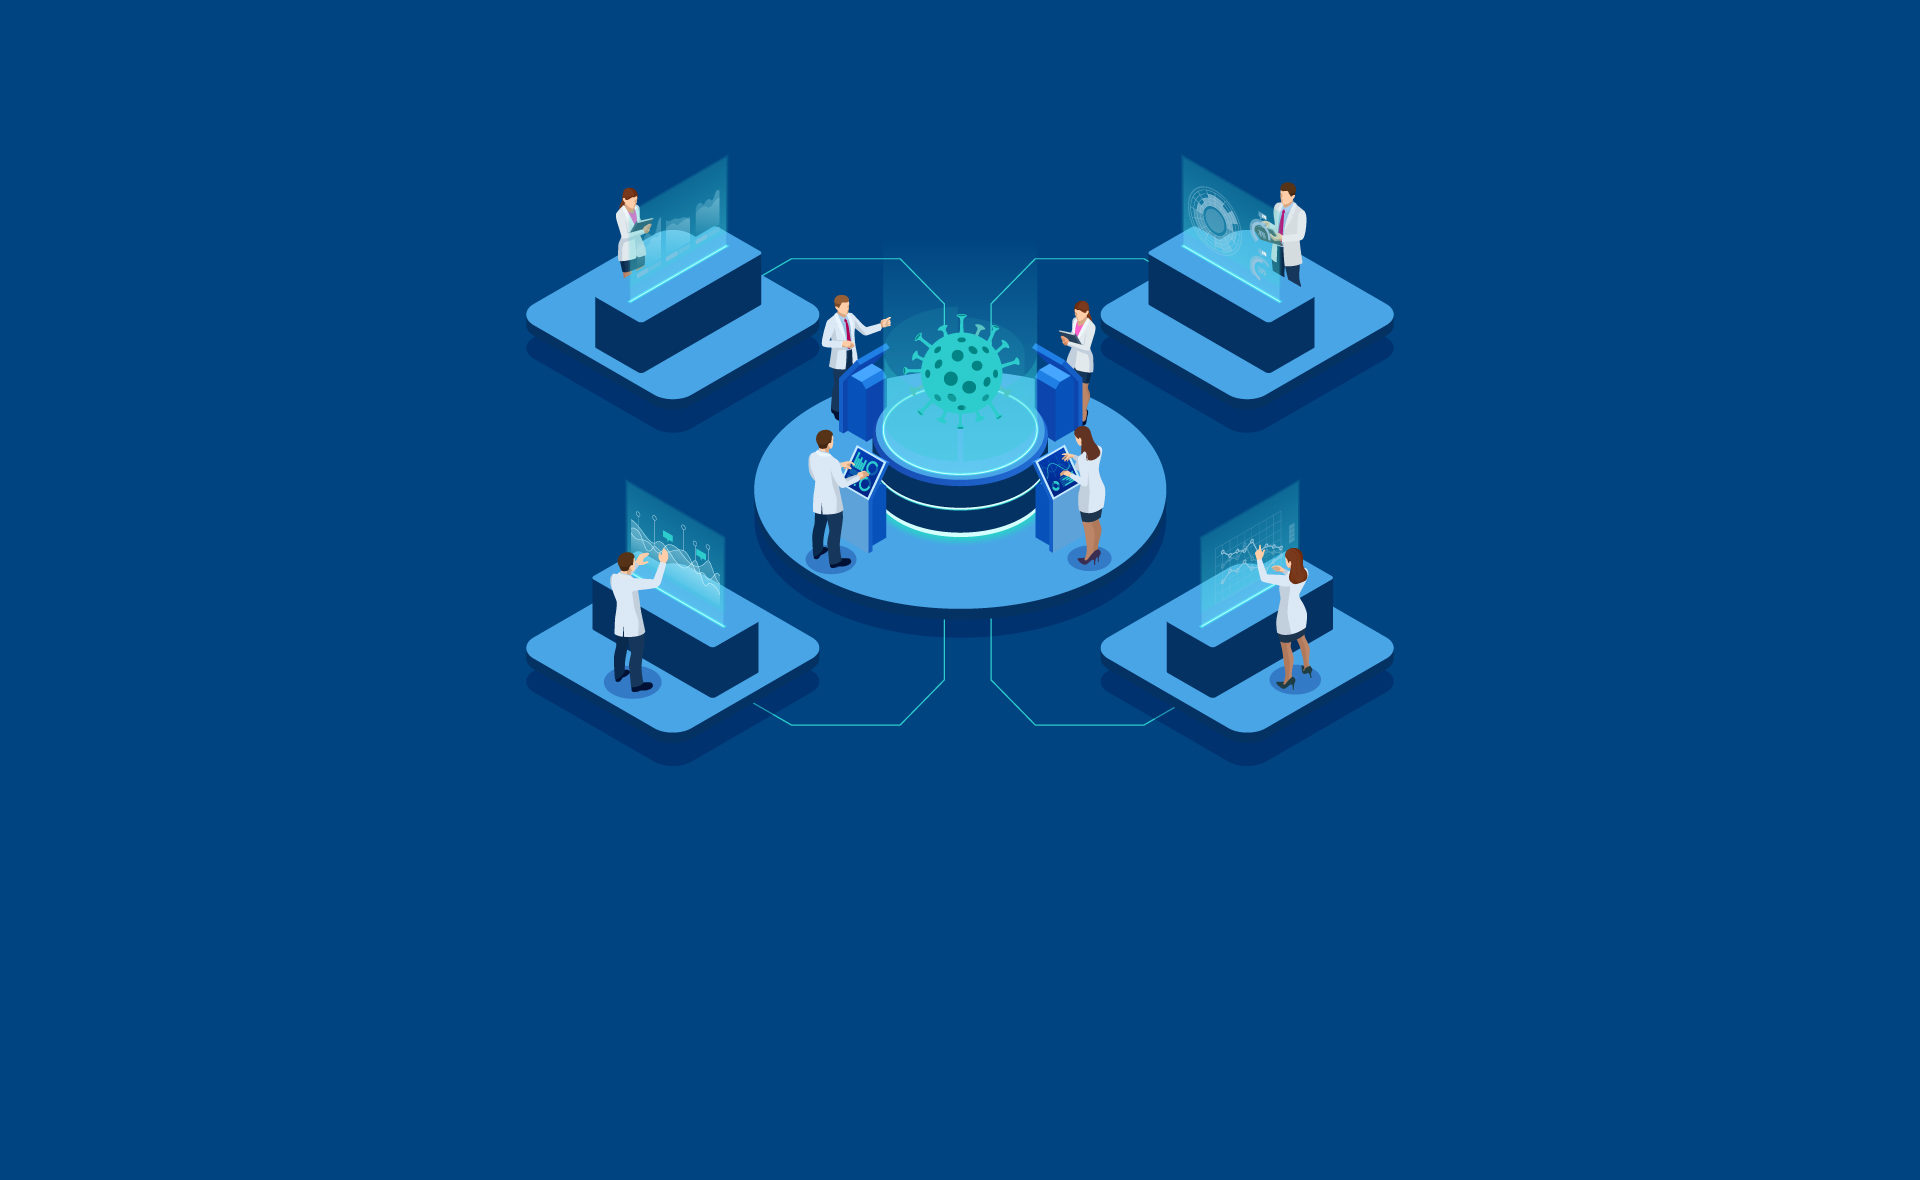 How Artificial Intelligence can help fight COVID-19 – BBVA